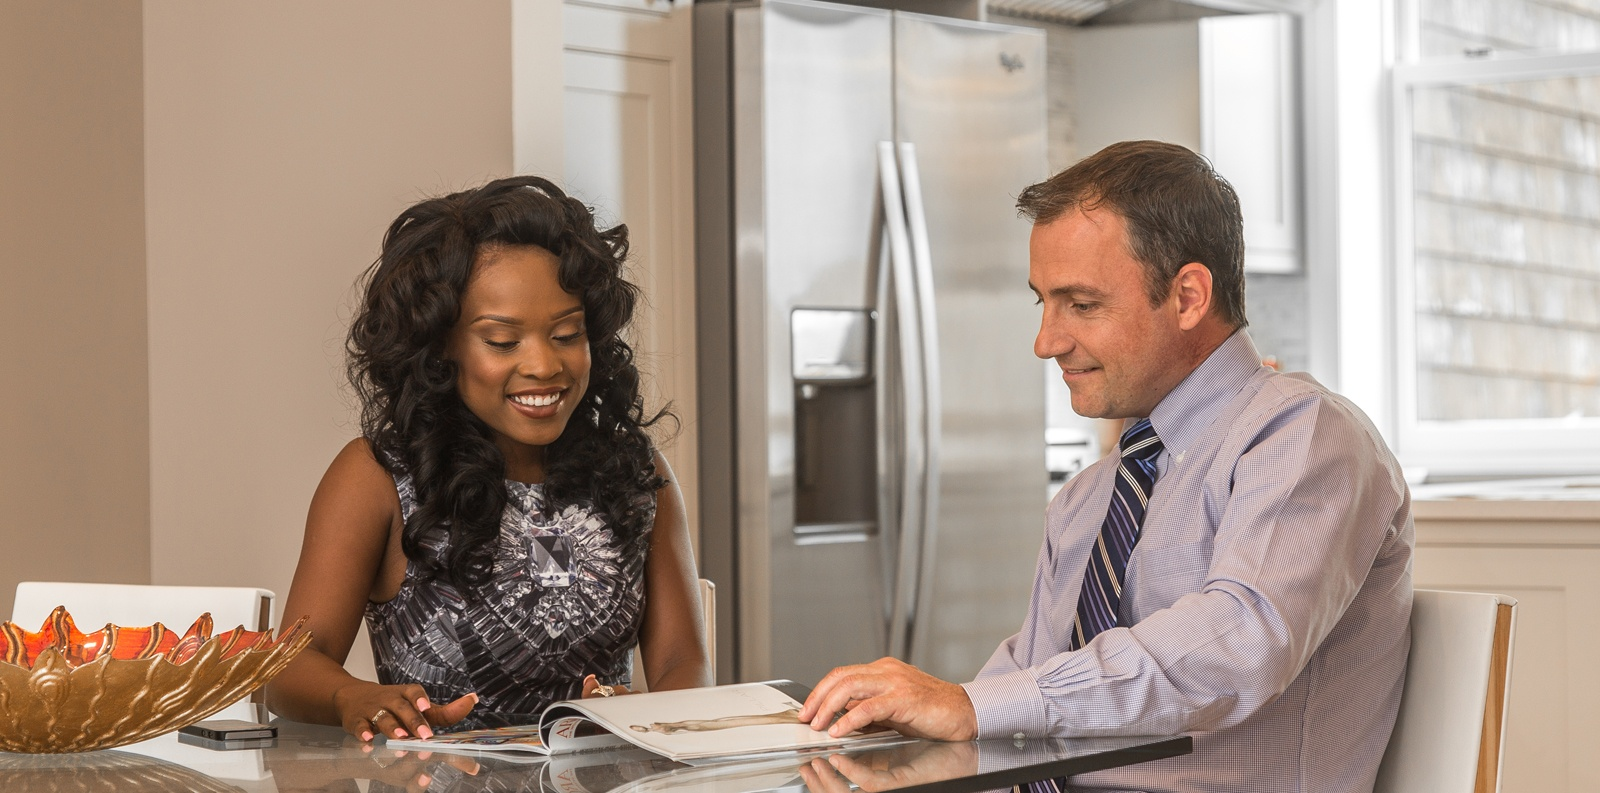 Top 5 Considerations for NYC Real Estate Brokers